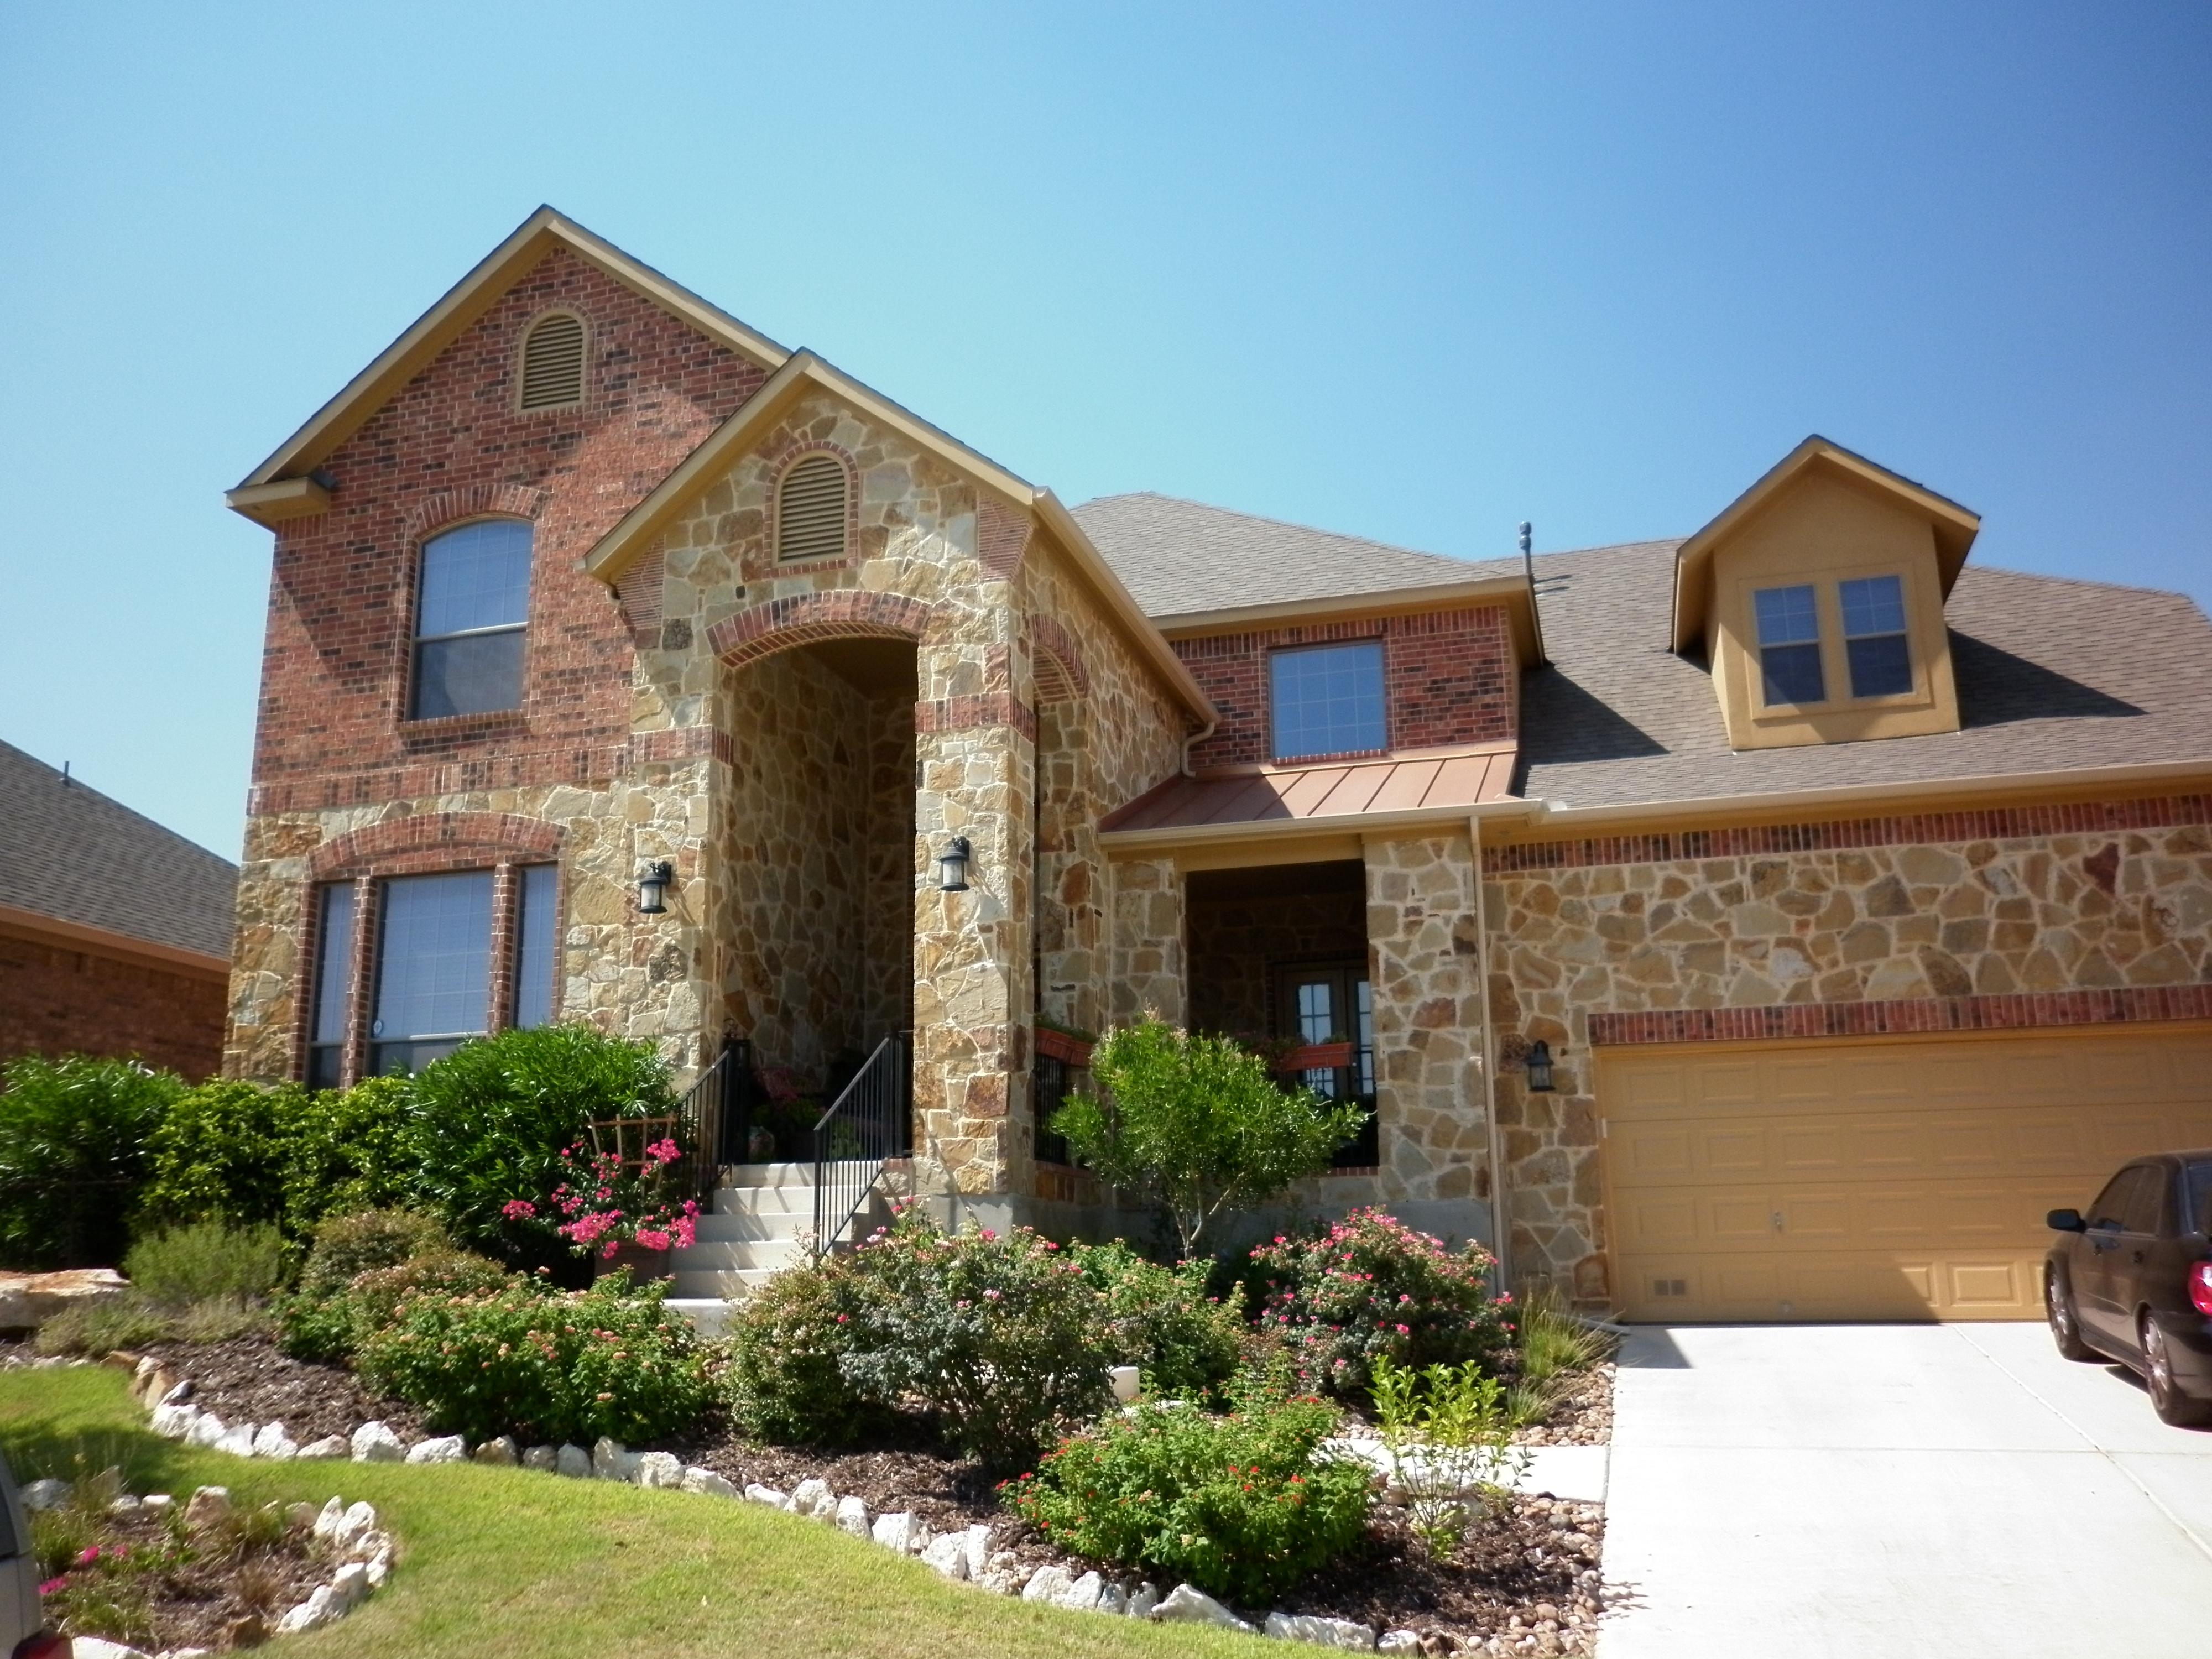 Stunning Home For Sale In Cibolo Canyons Near Tpc Jw Marriott Stone Oak North San Antonio Area